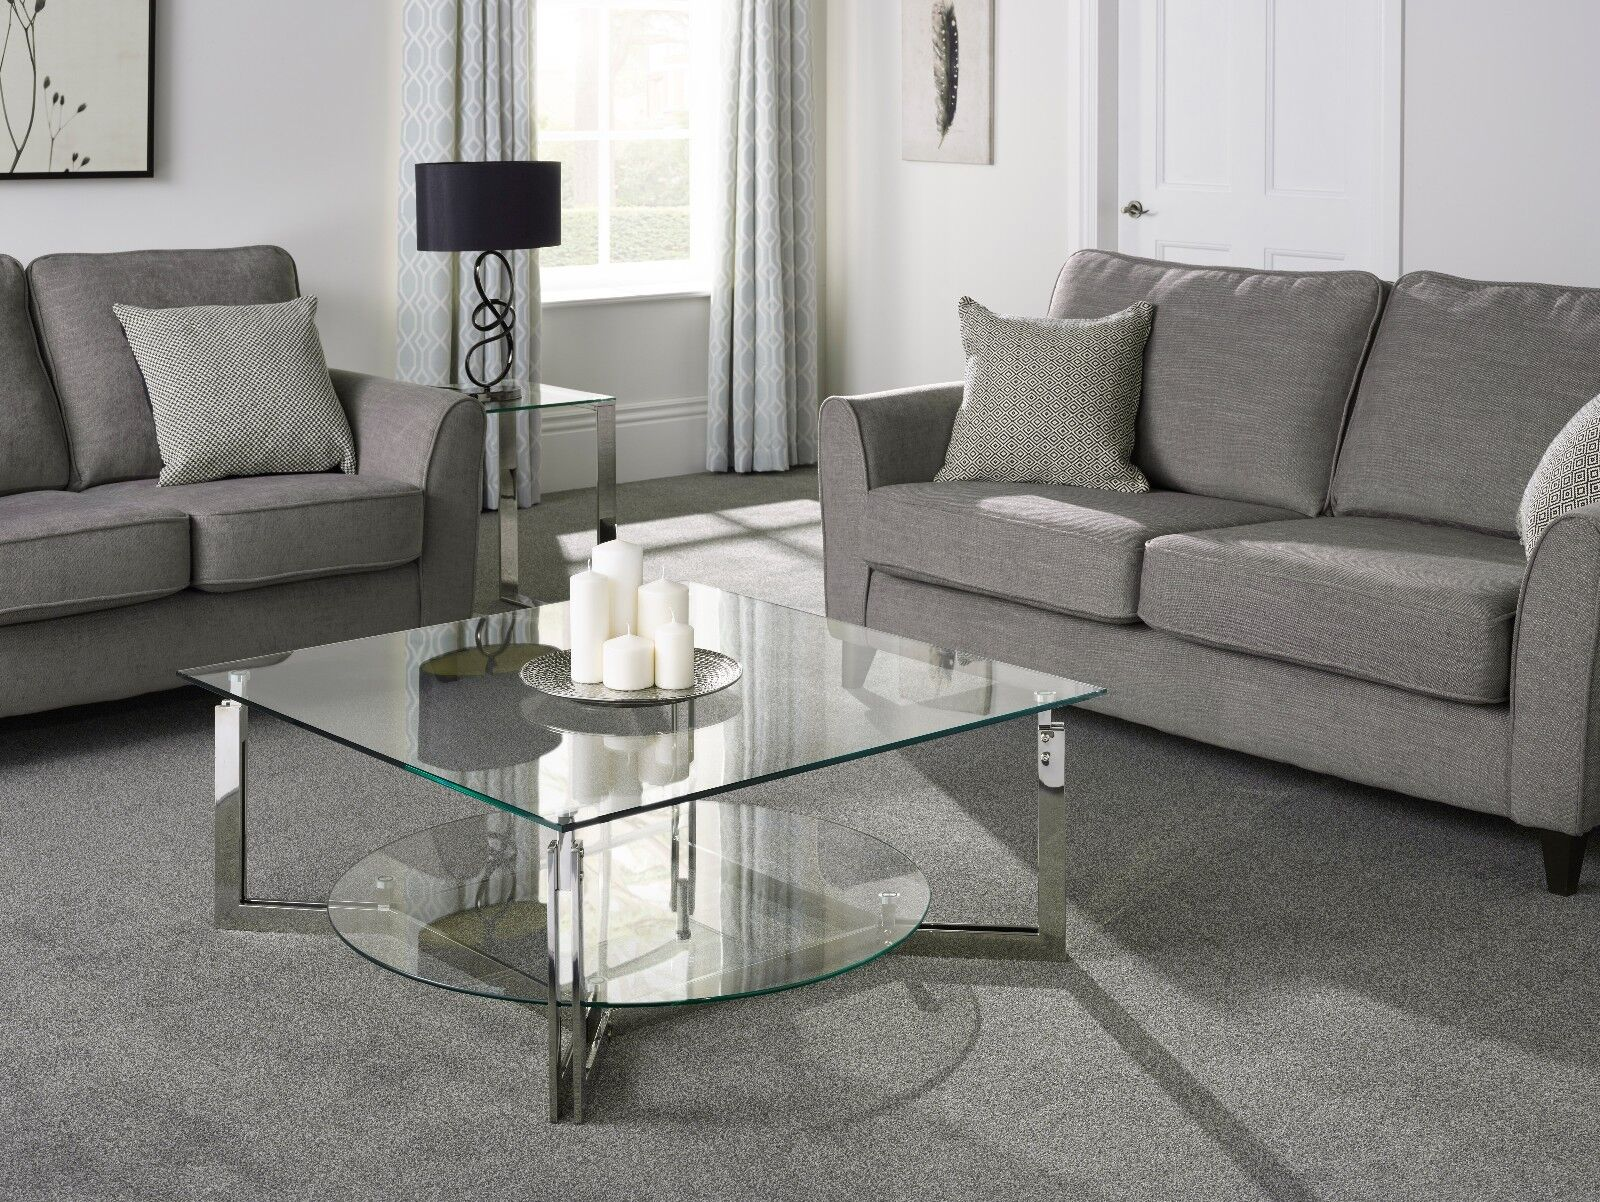 Eclipse Glass Coffee Table With Shelf Stainless Steel Modern Square